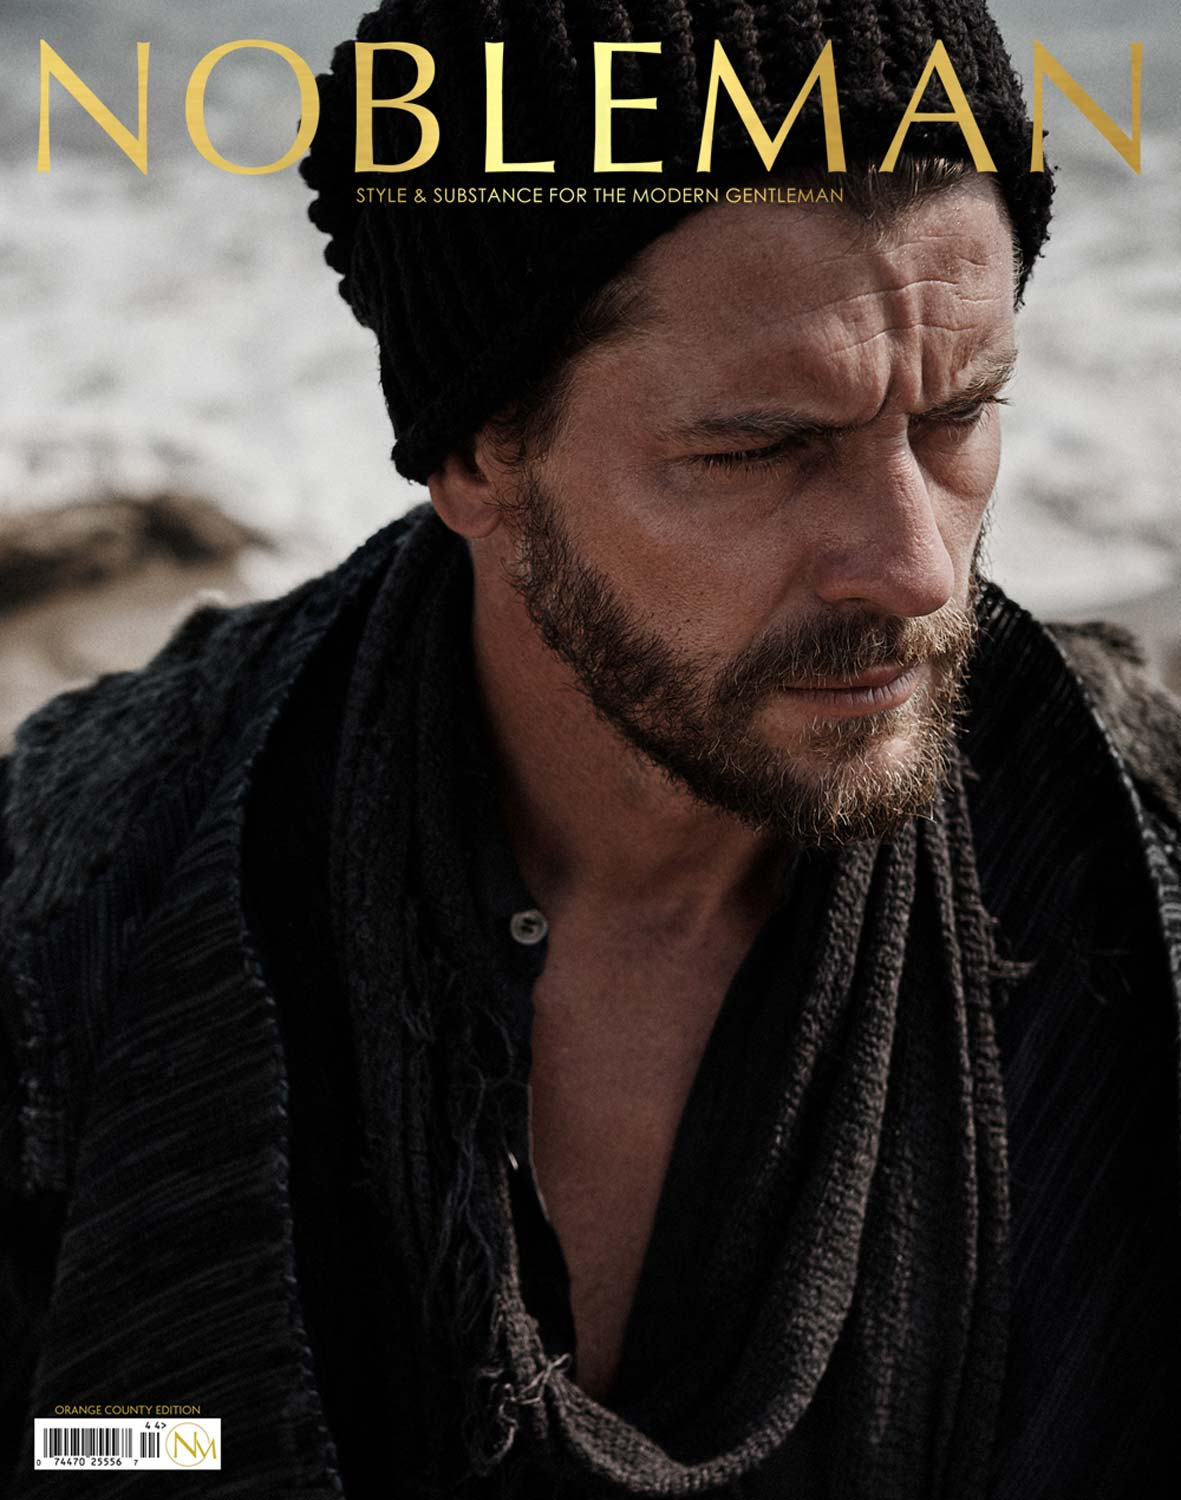 NOBLEMAN  PREMIERE ISSUE COVER